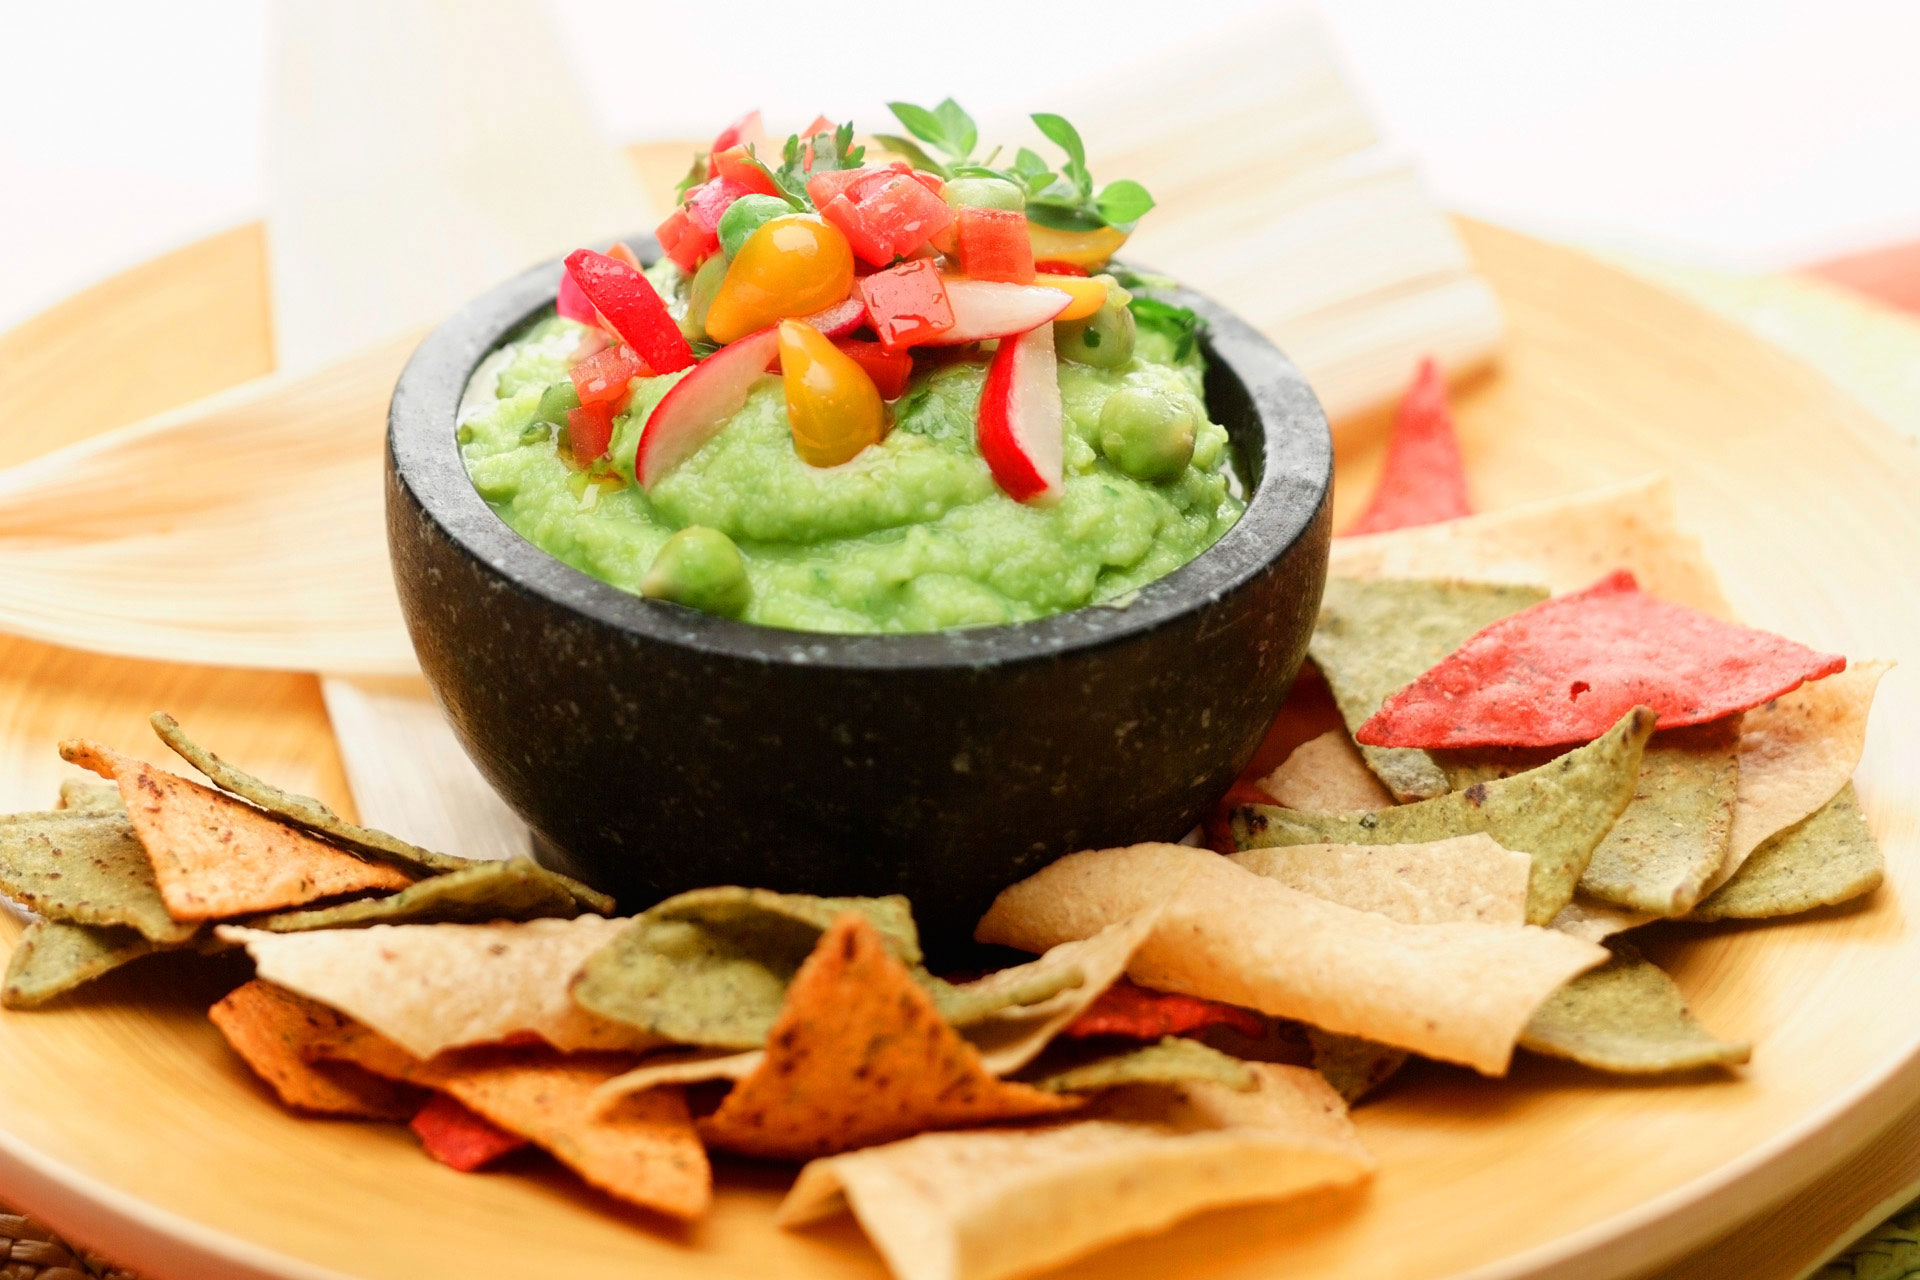 Beautiful-food-photography-of-garbanzo-guacamole-bean-dip